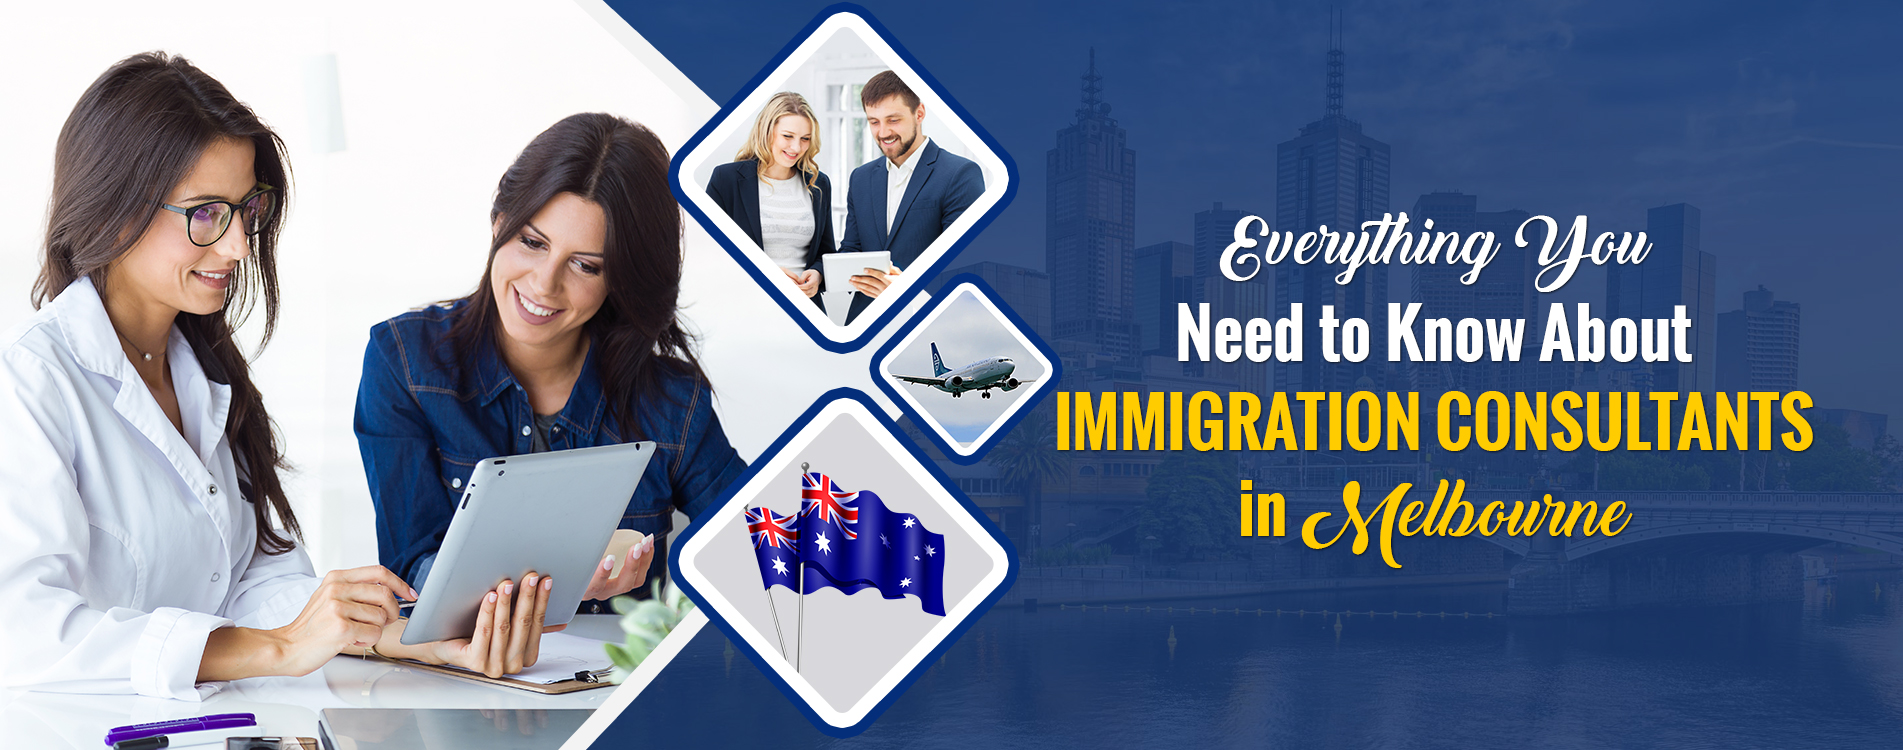 Everything You Need to Know About Immigration Consultants in Melbourne